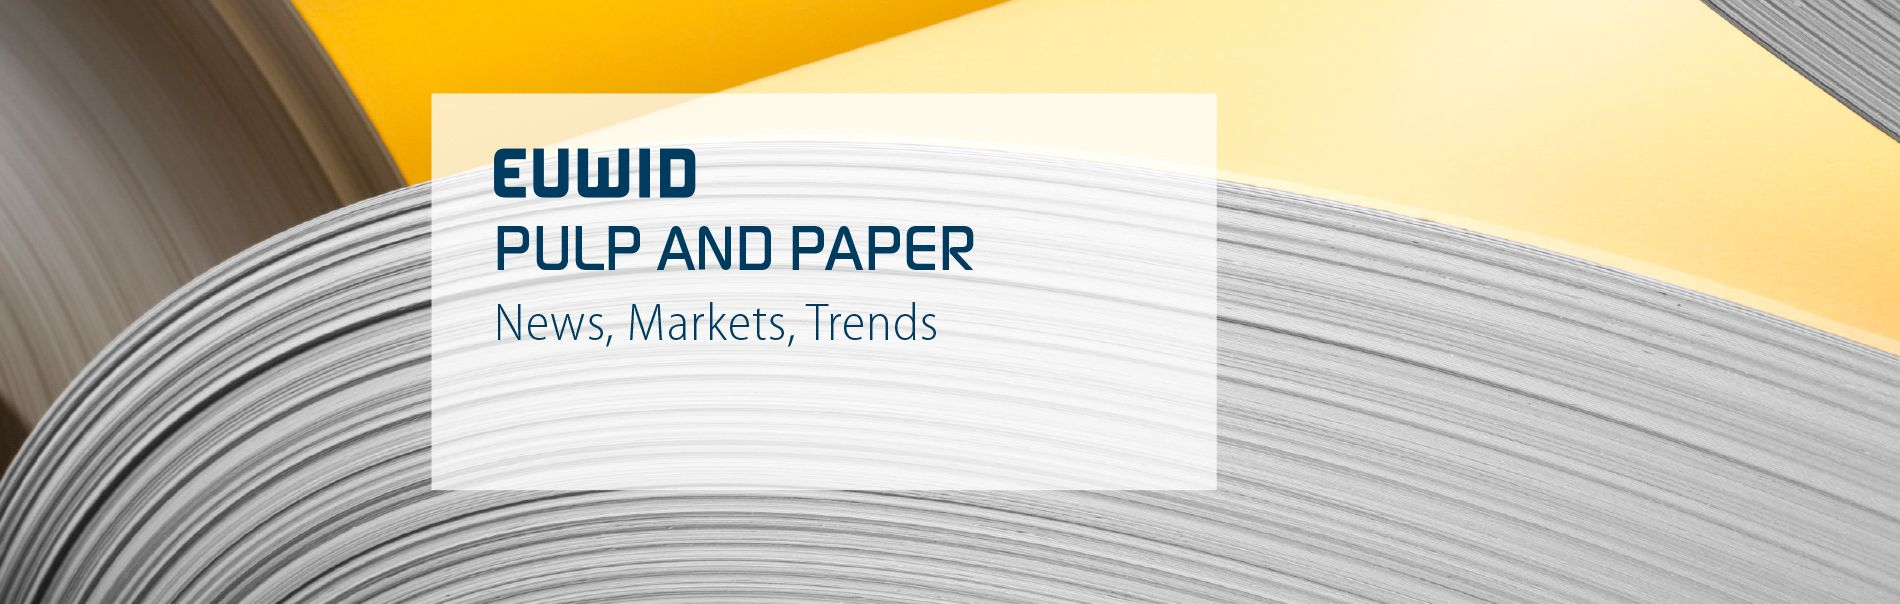 EUWID Pulp and Paper - News, Markets & Trends